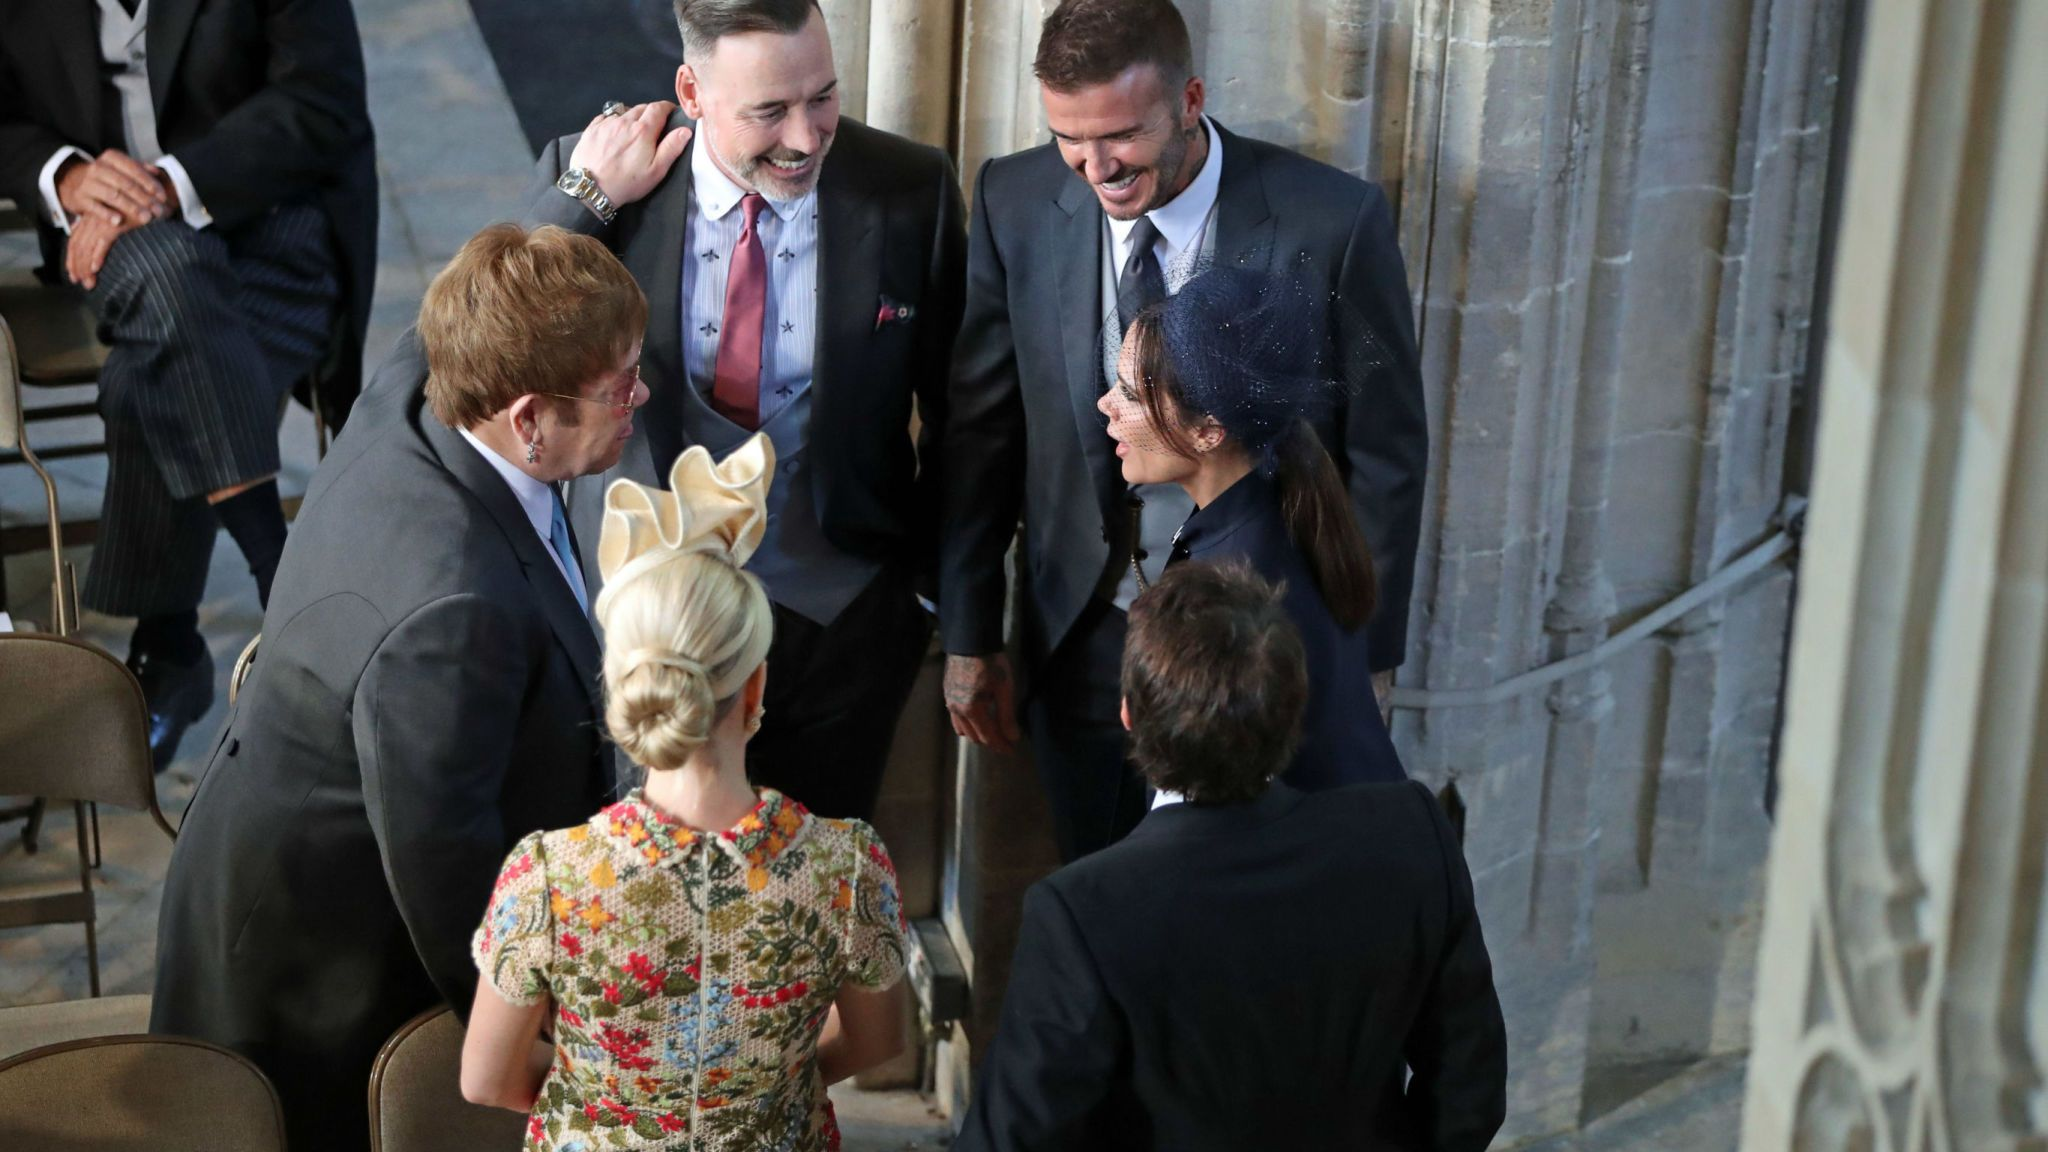 TOPSHOT - Former england footballer David Beckham and wife Victoria Beckham speak with British musician Elton John and partner David Furnish before the wedding ceremony of Britain's Prince Harry, Duke of Sussex and US actress Meghan Markle in St George's Chapel, Windsor Castle, in Windsor, on May 19, 2018